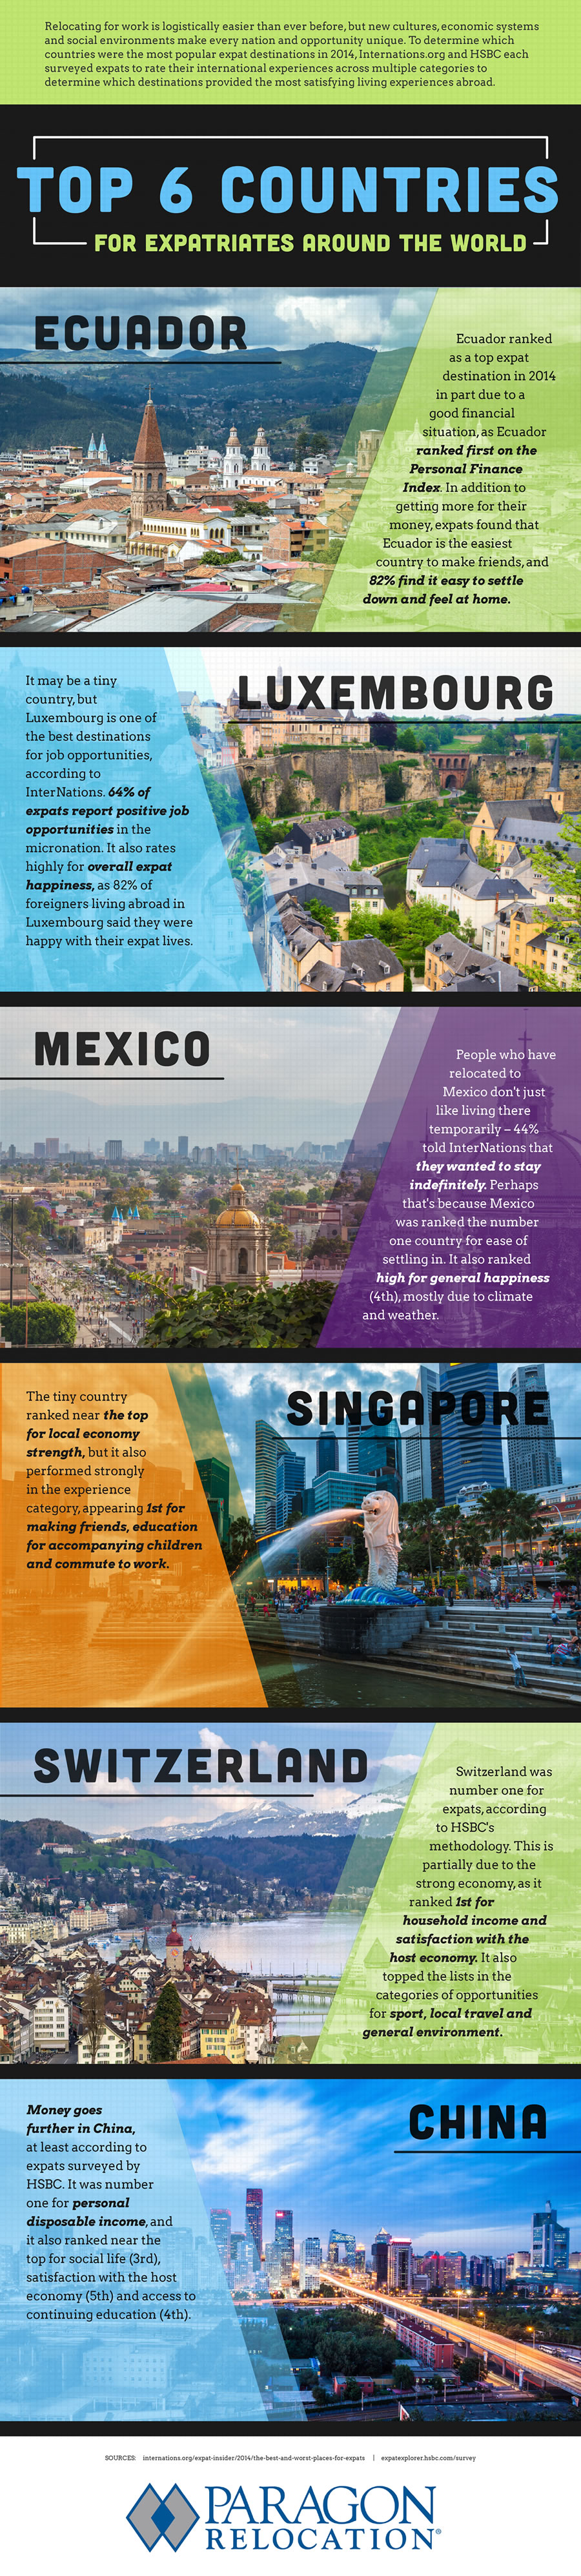 Infographic: Where are the best places to be an expat? | Paragon Relocation News